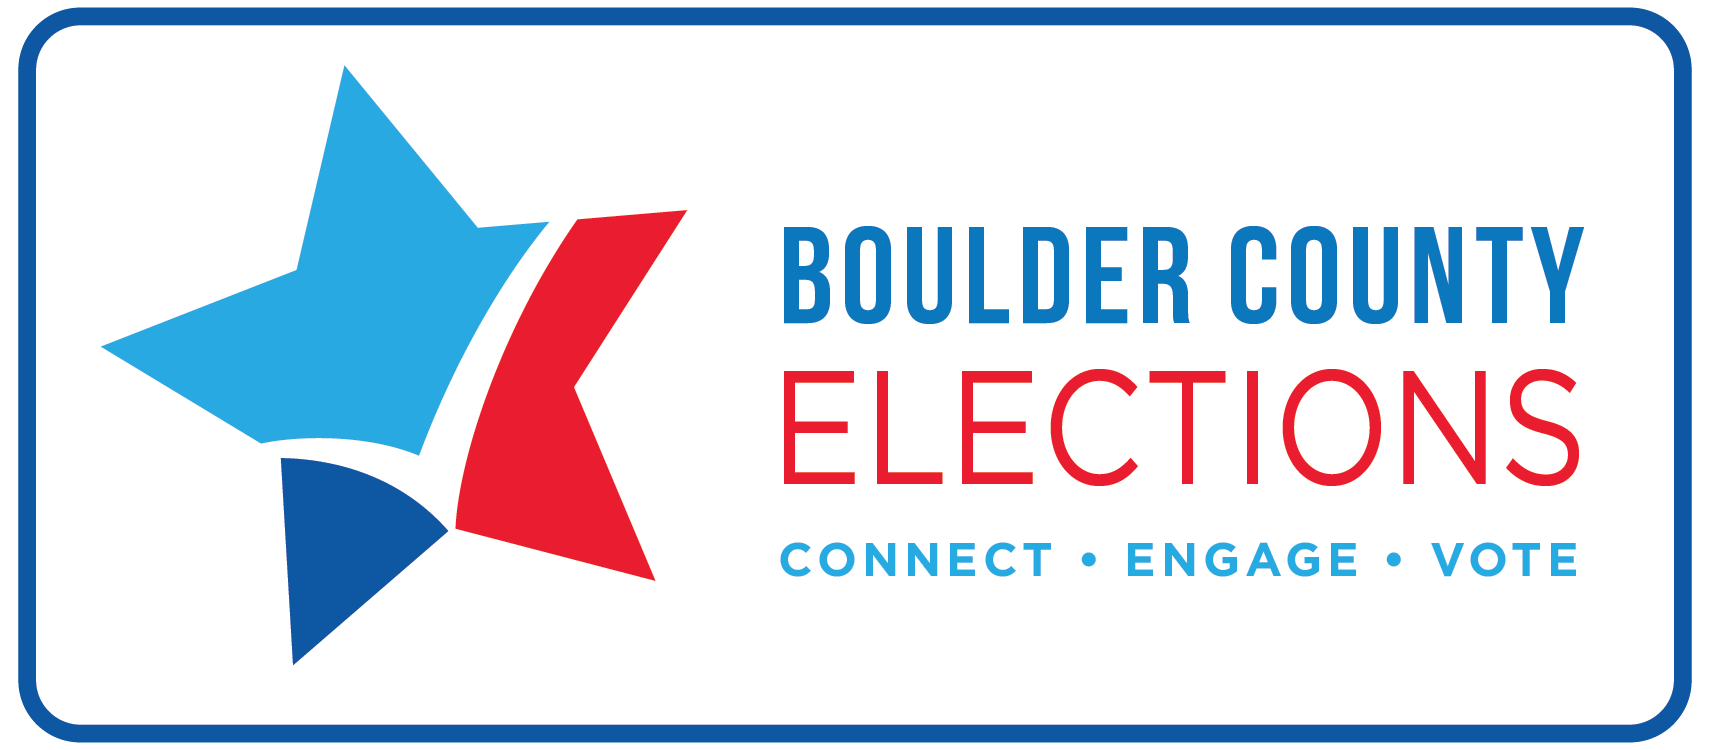 Boulder County Elections